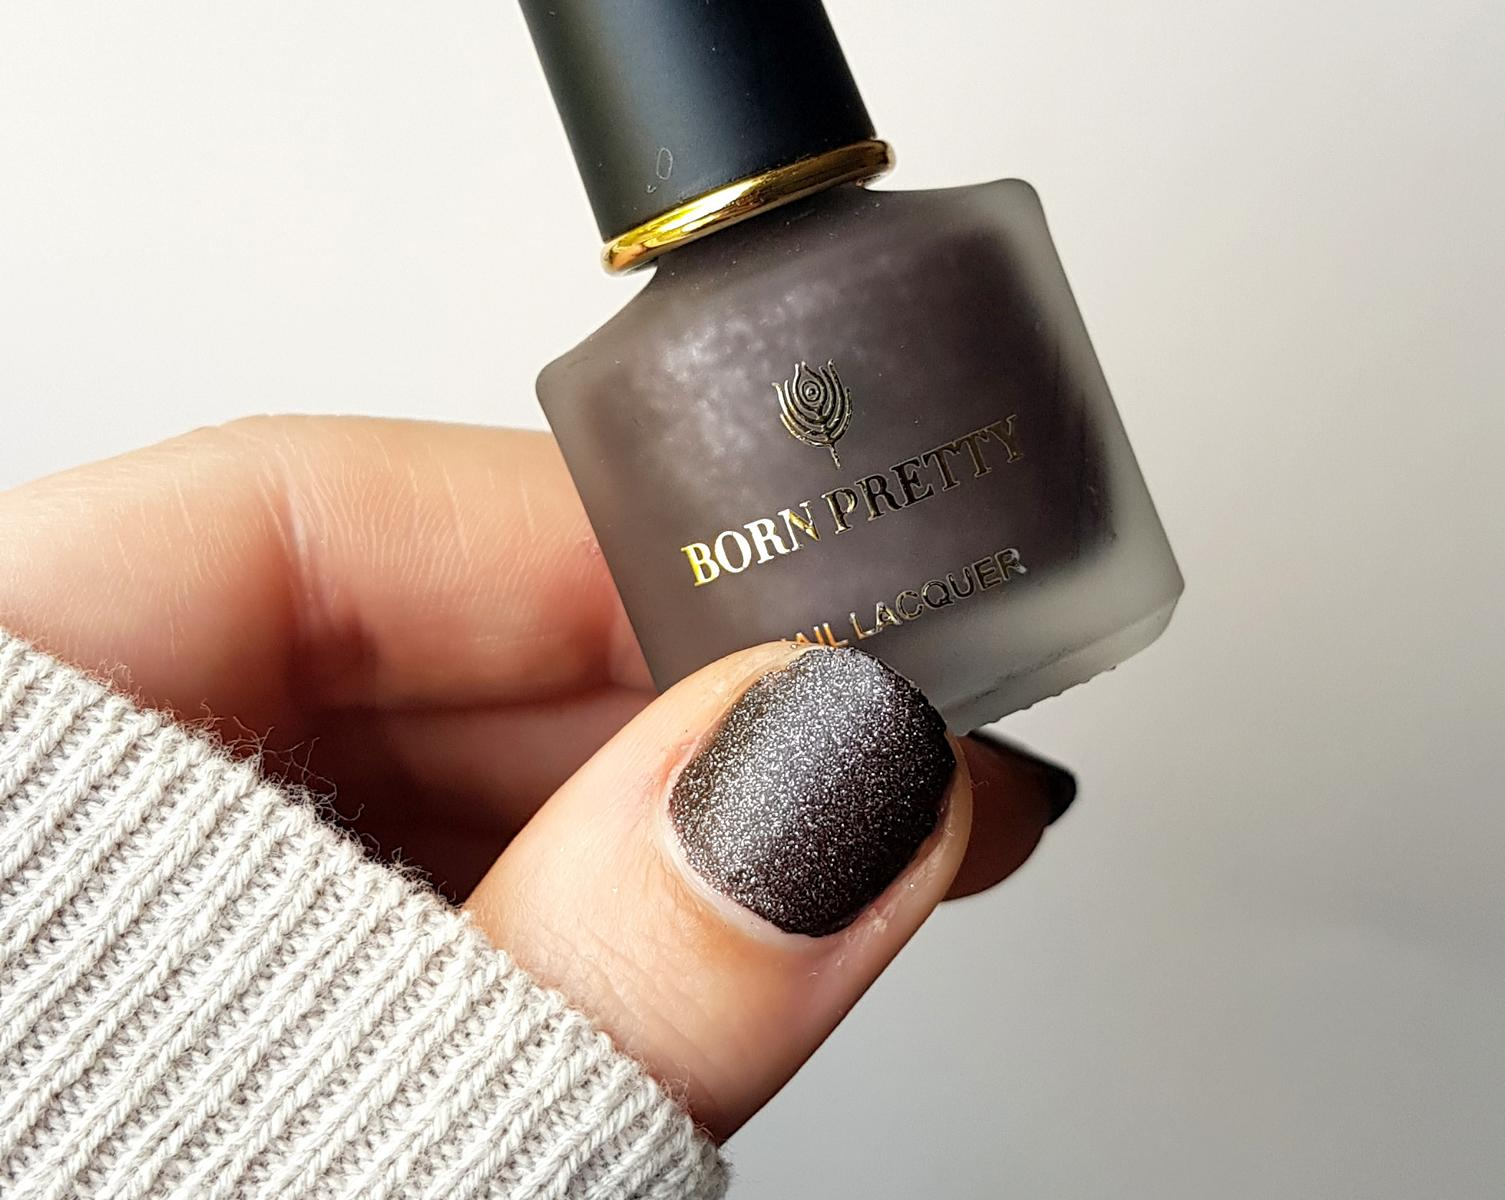 Born Pretty Pearlescent Matte Nailpolish Drop In Ocen